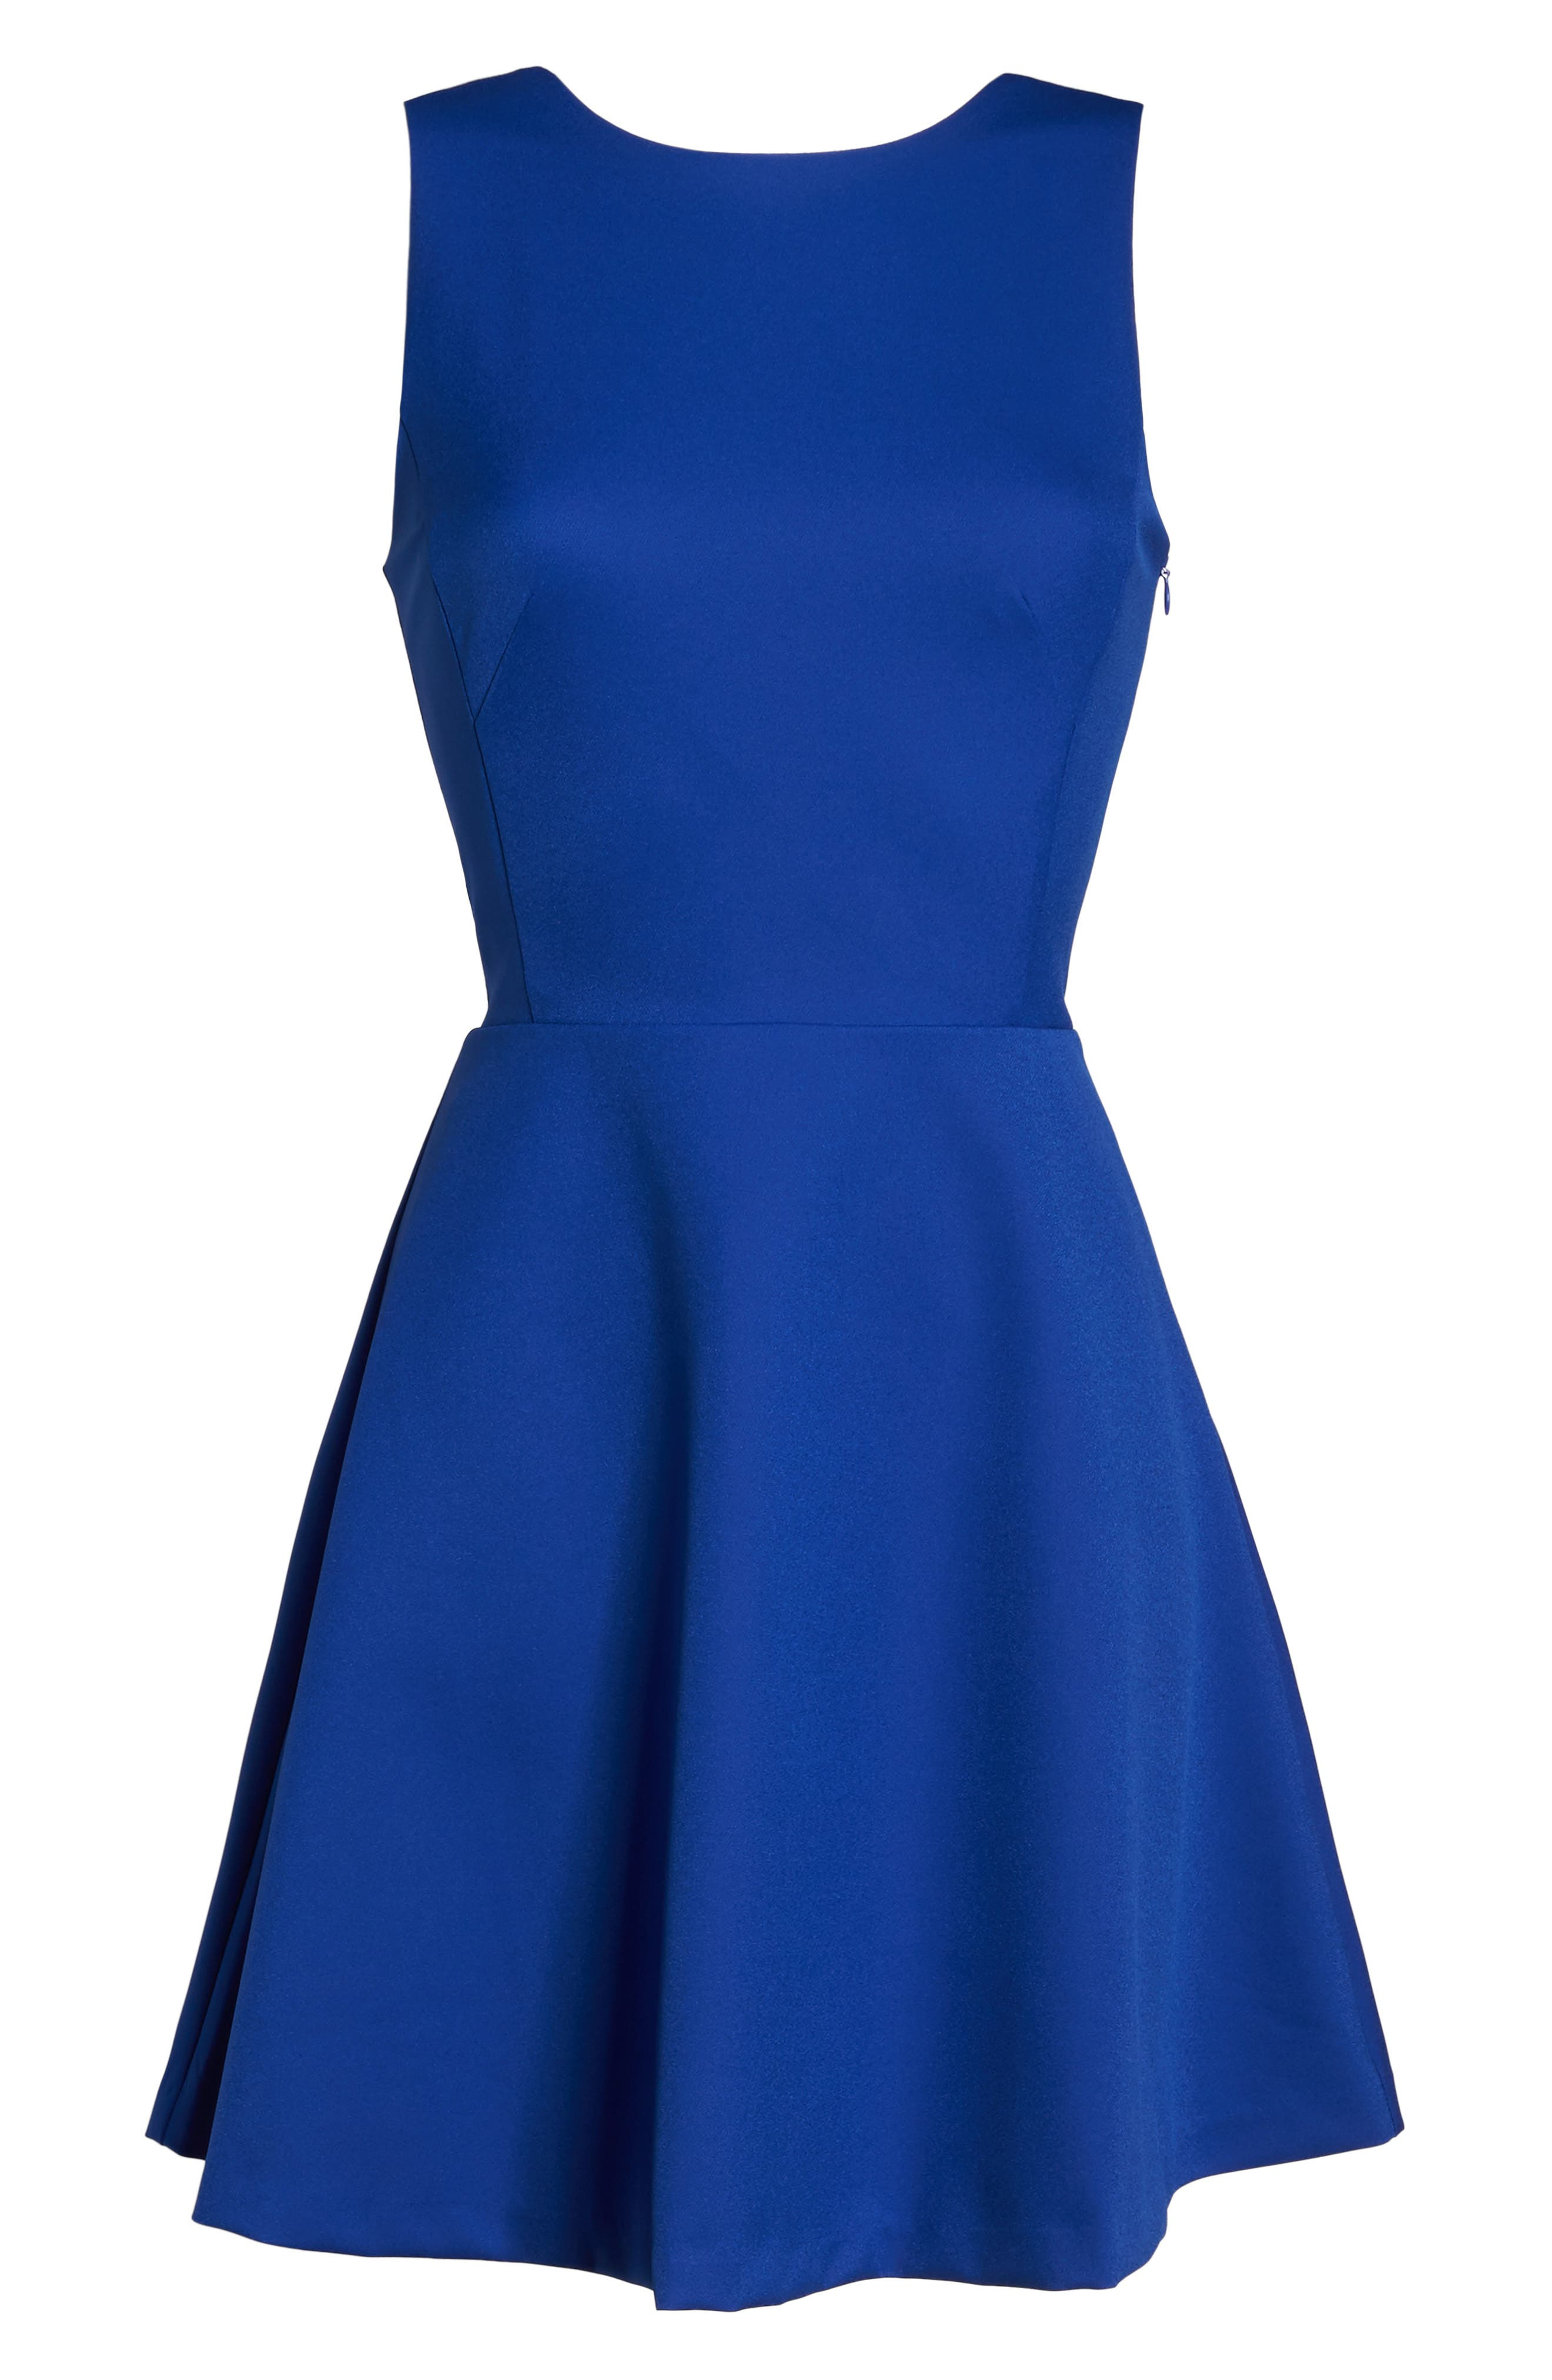 Barbara Fit & Flare Dress,                             Alternate thumbnail 6, color,